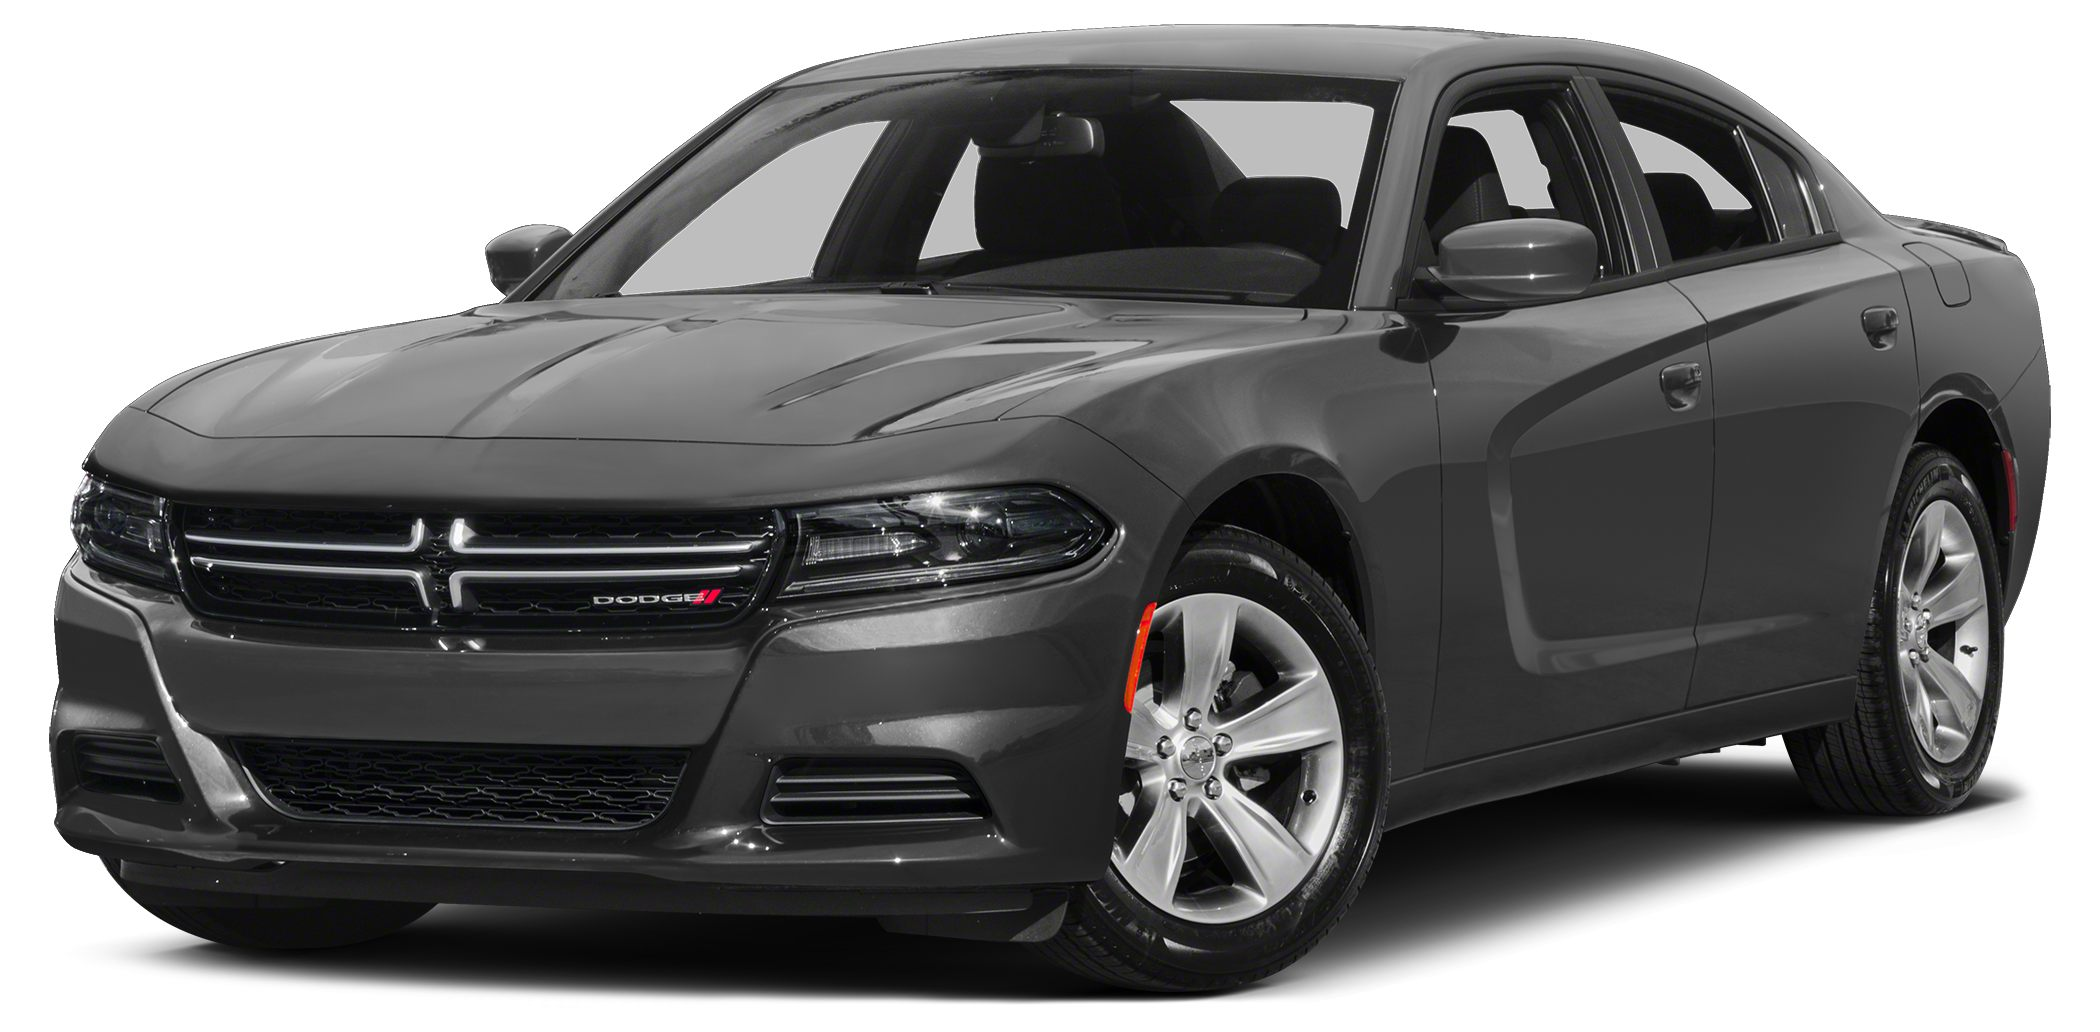 2017 Dodge Charger SE SPECIAL ONLINE PRICE INCLUDES 3250 IN REBATES THAT ALL CUSTOMERS QUALIFY F